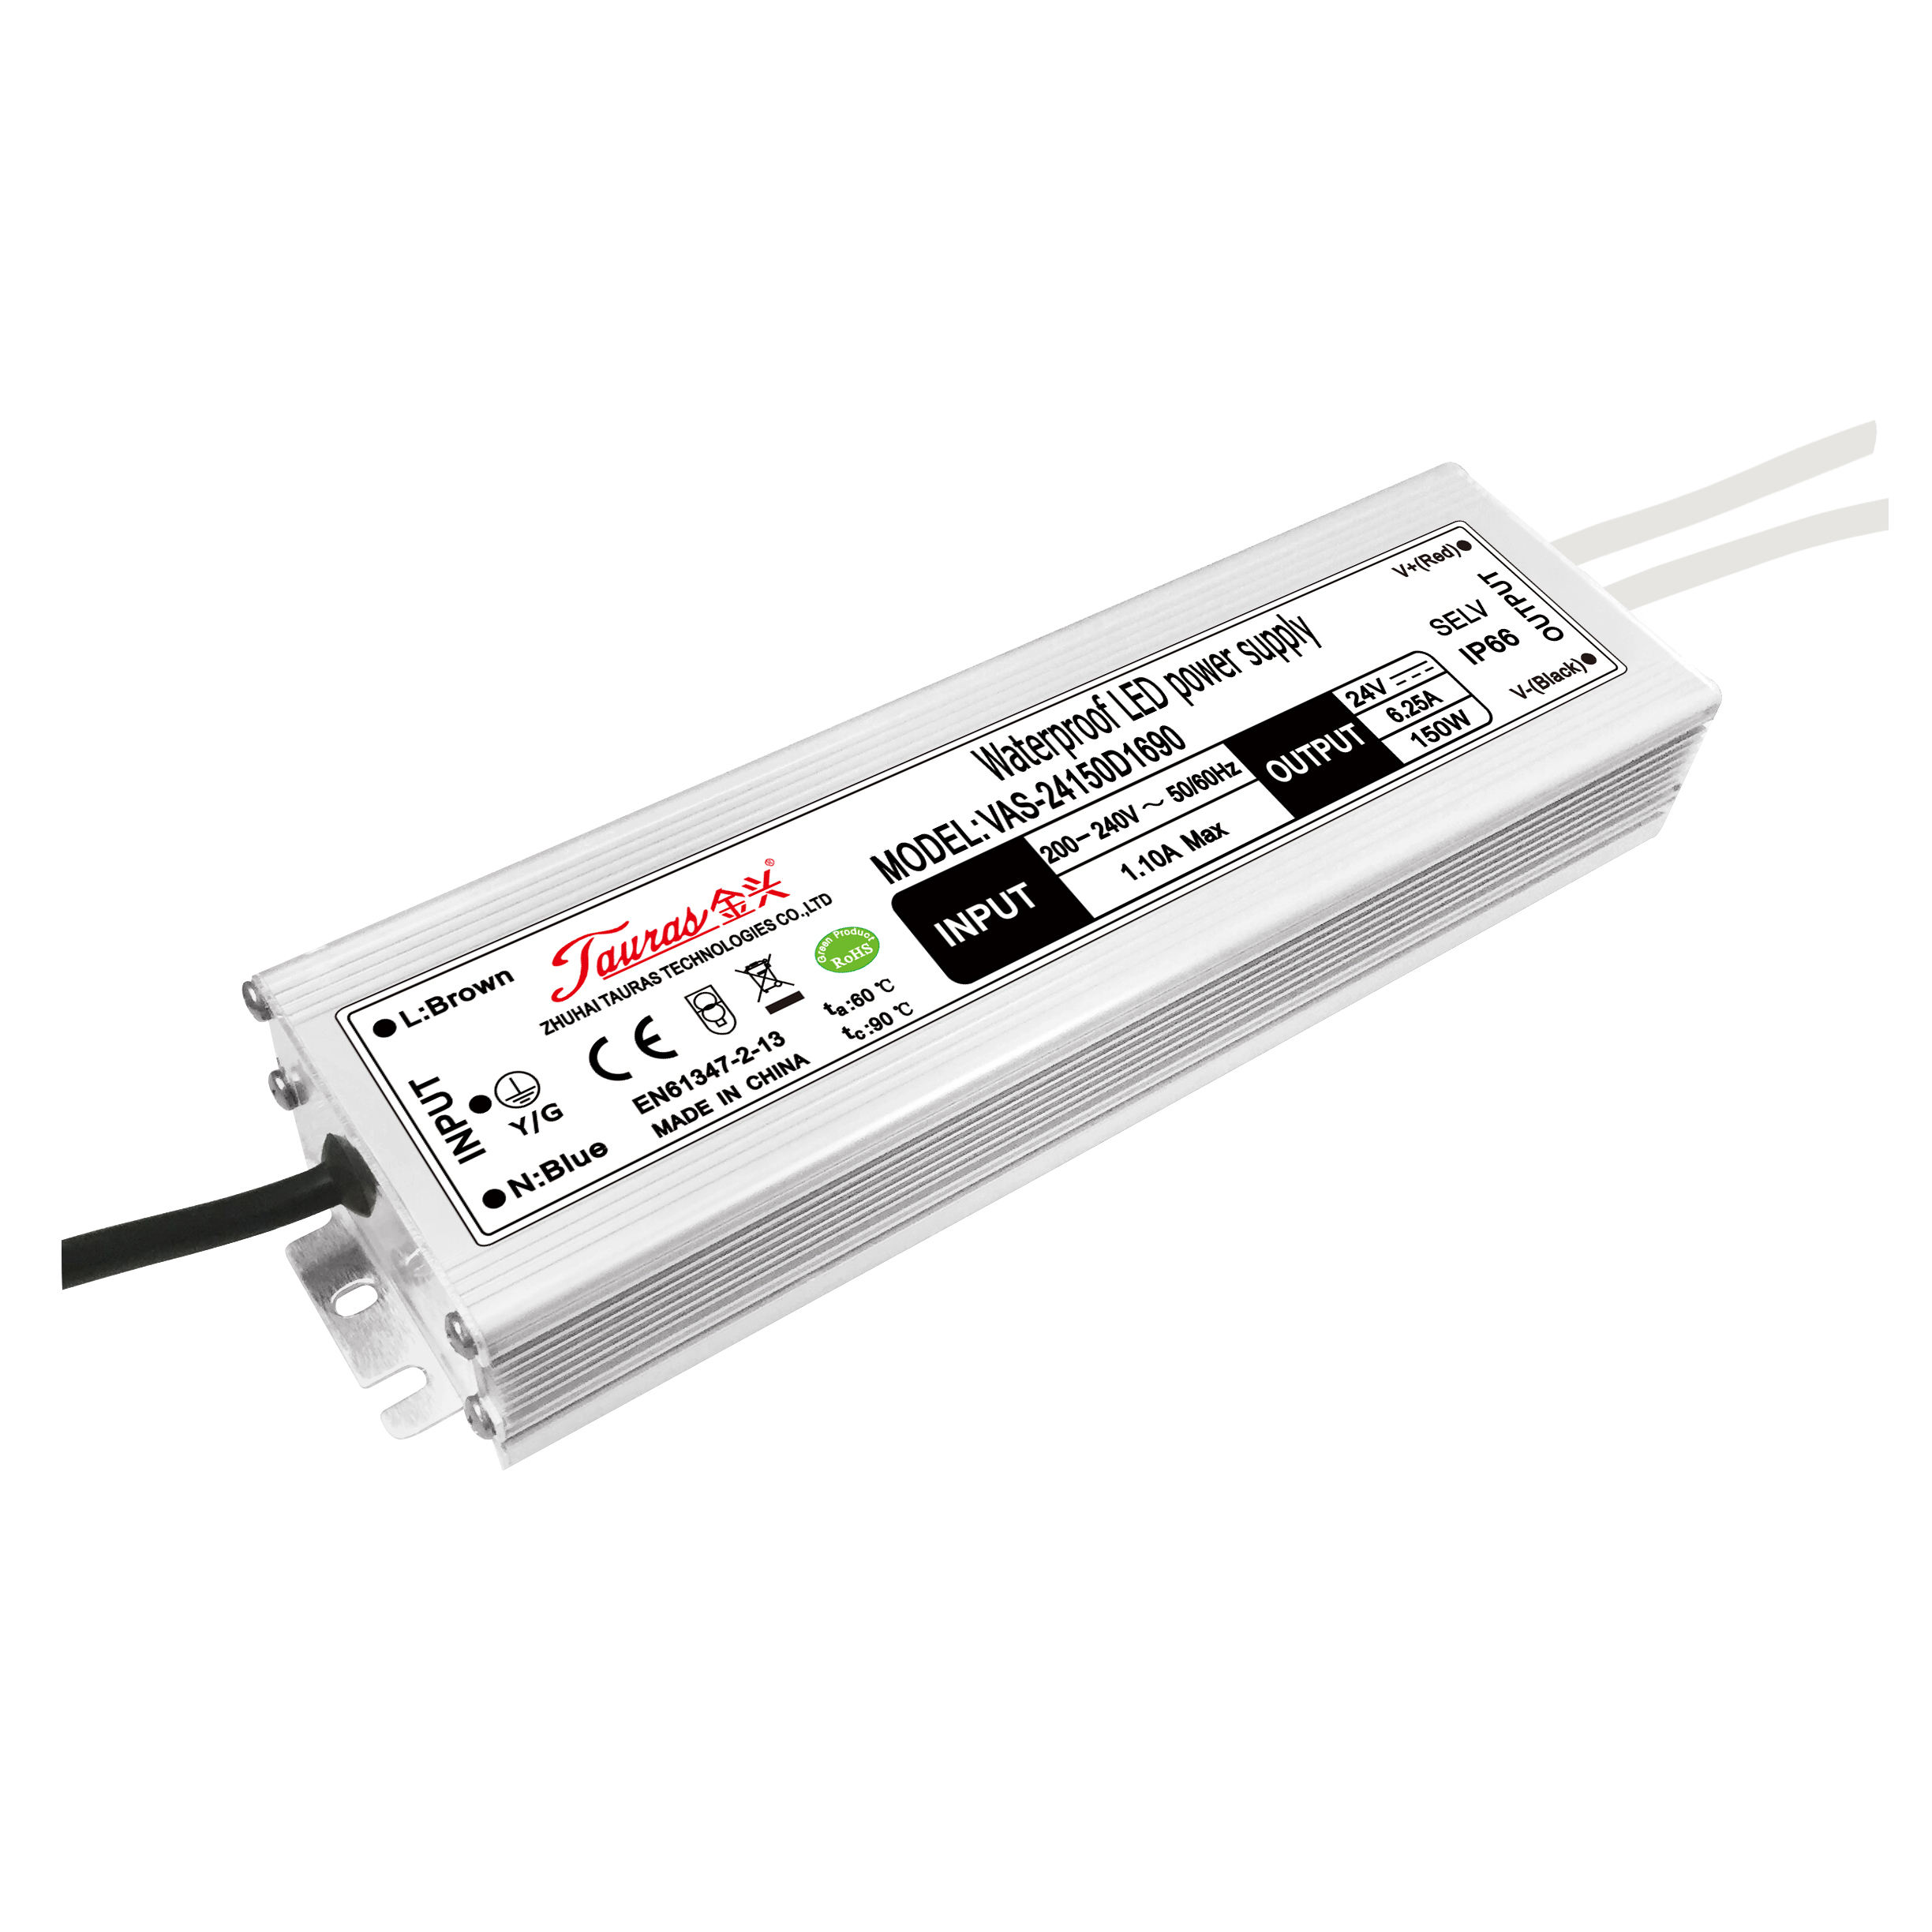 24v 6.25a 150w constant voltage LED driver waterproof IP67 LED power supply for LED strips